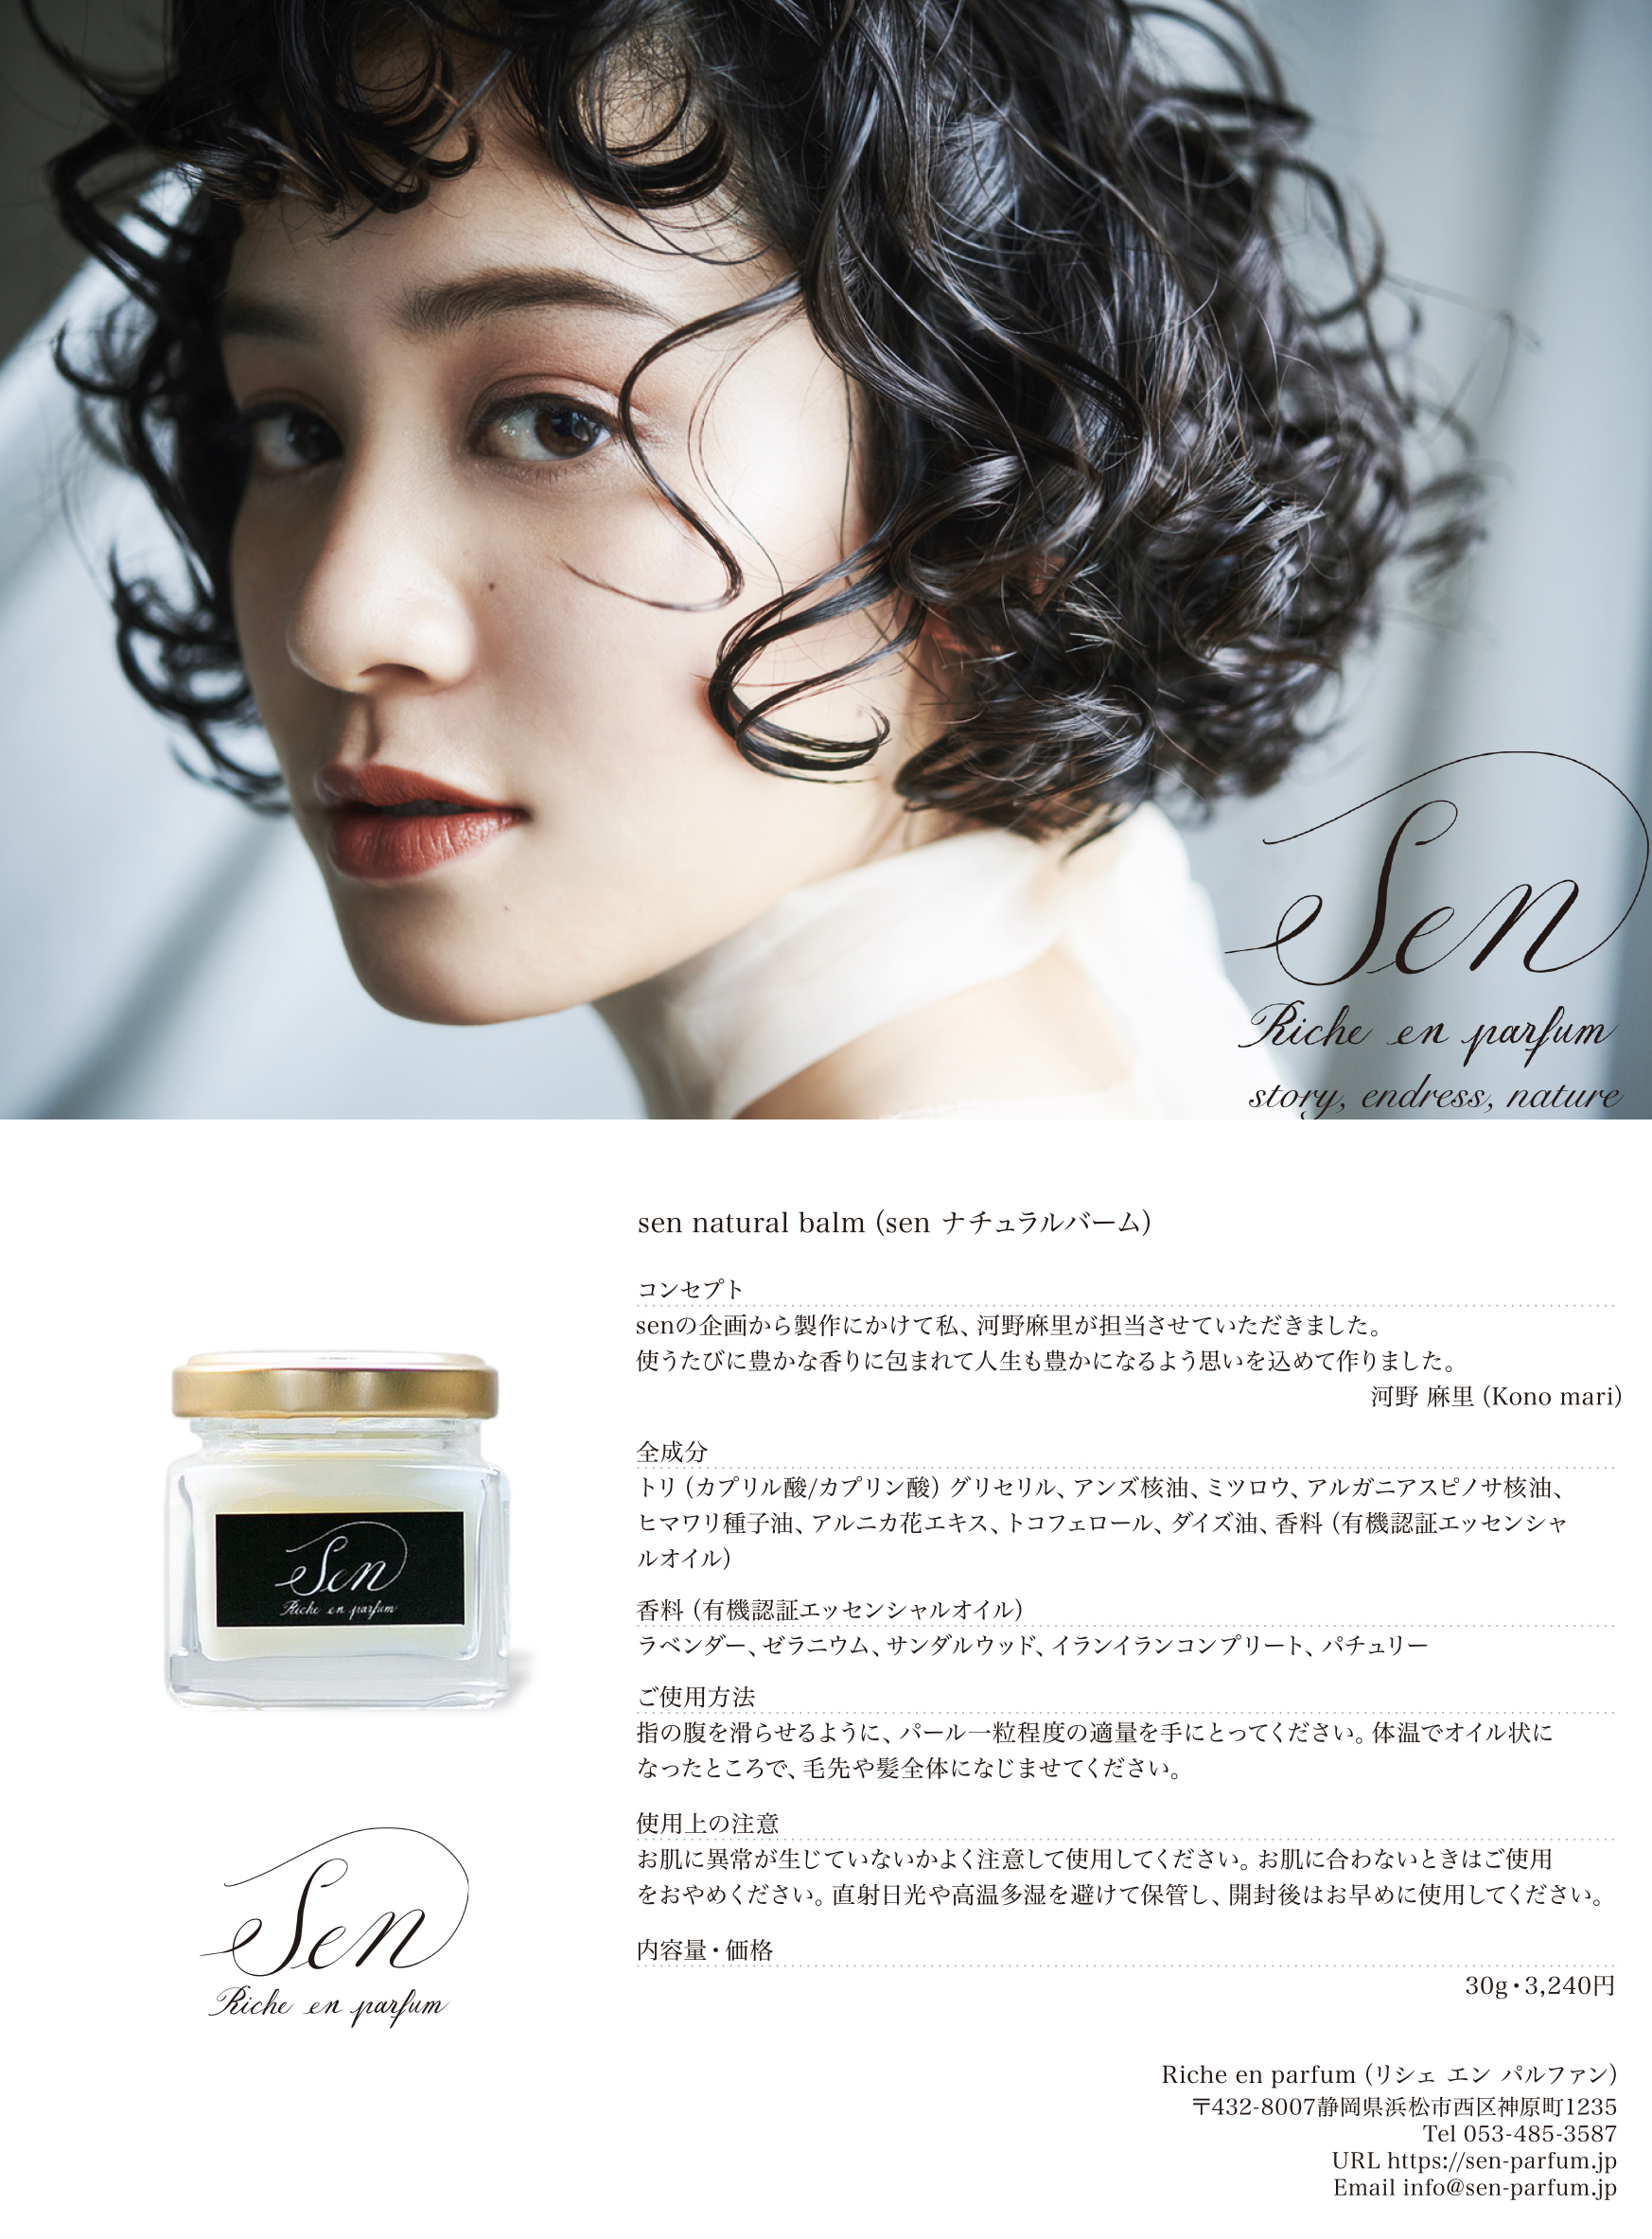 Riche en parfum – sen natural balm パンフレット